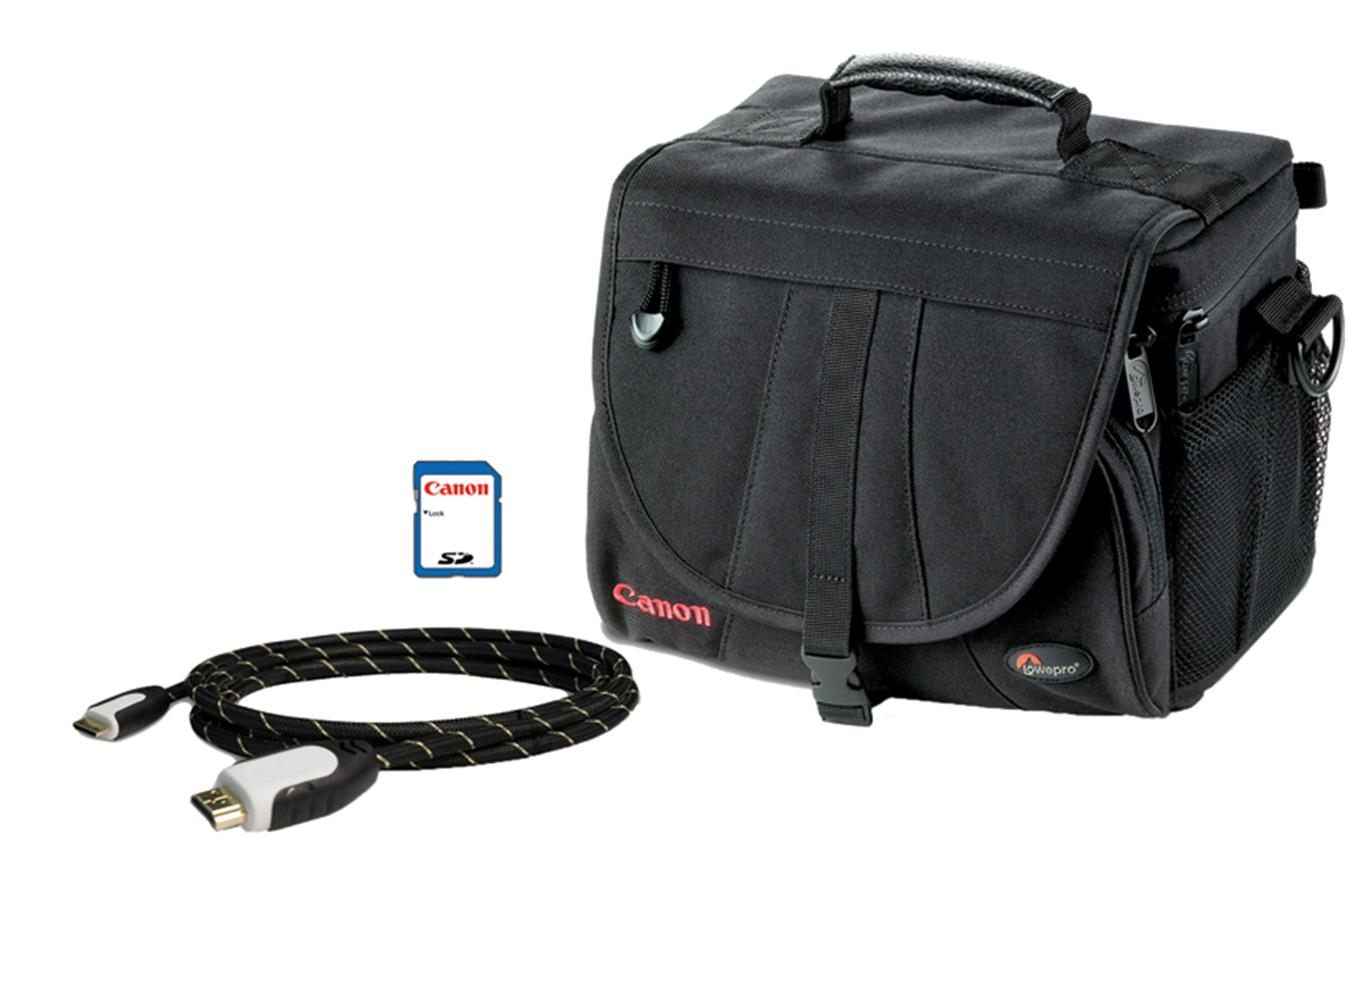 CANON DSLR GRAB&GO KIT(HDMI CBL/BAG/4GB)